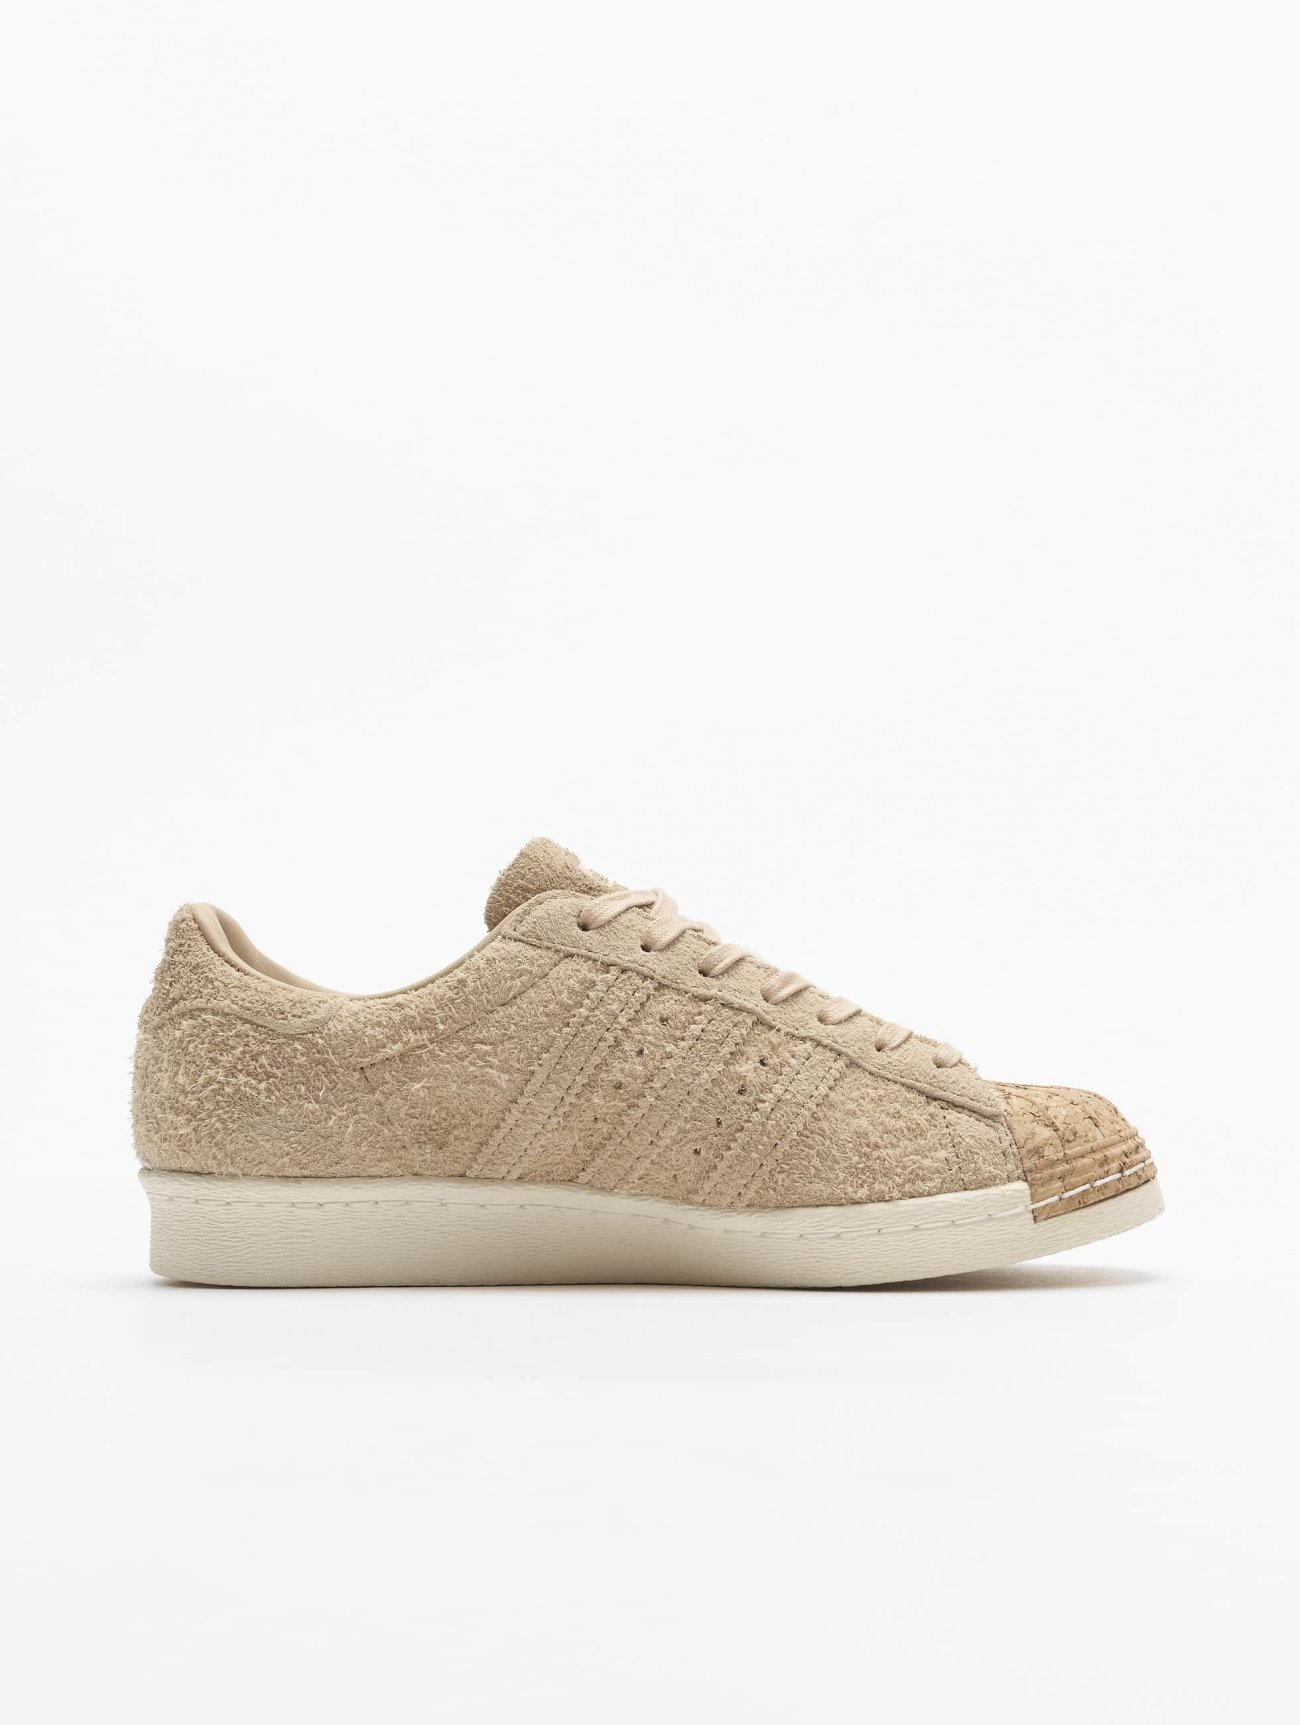 Adidas Superstar 80s Cork W Beige